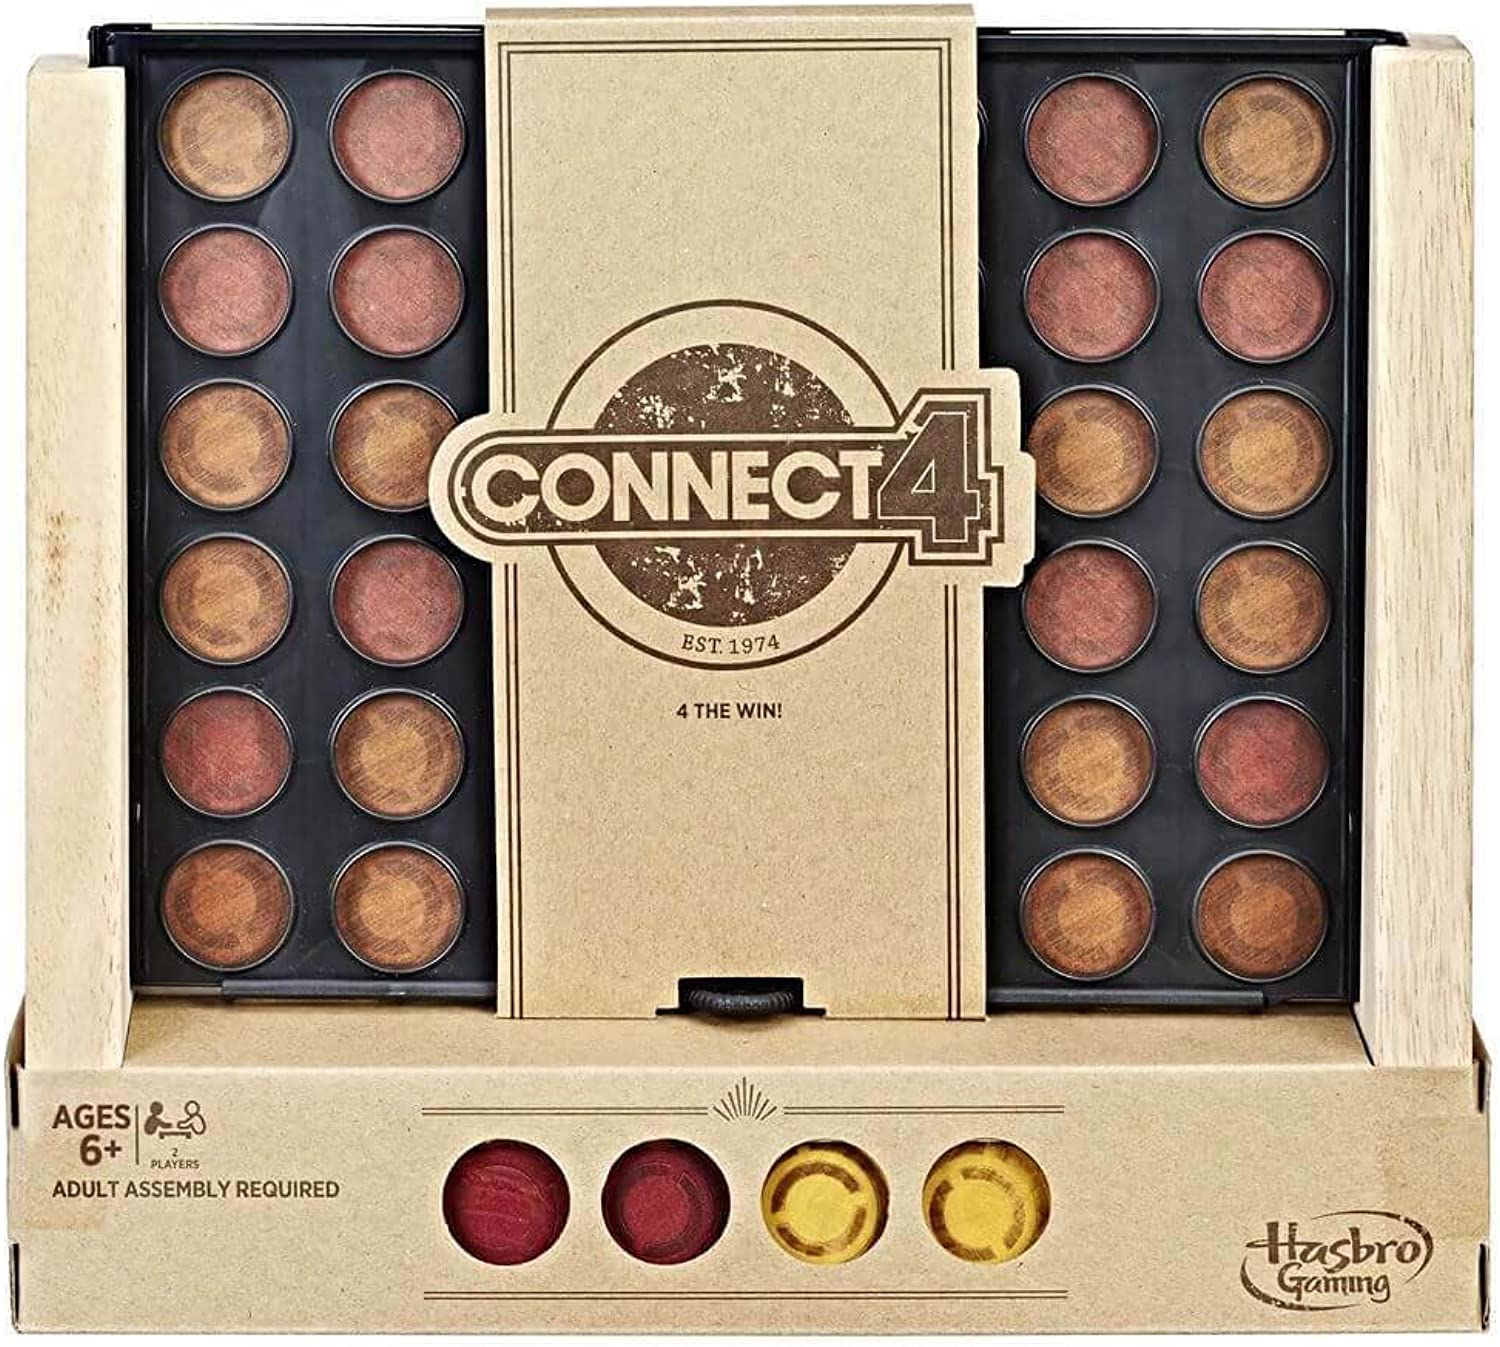 Connect 4 Rustic Board Game